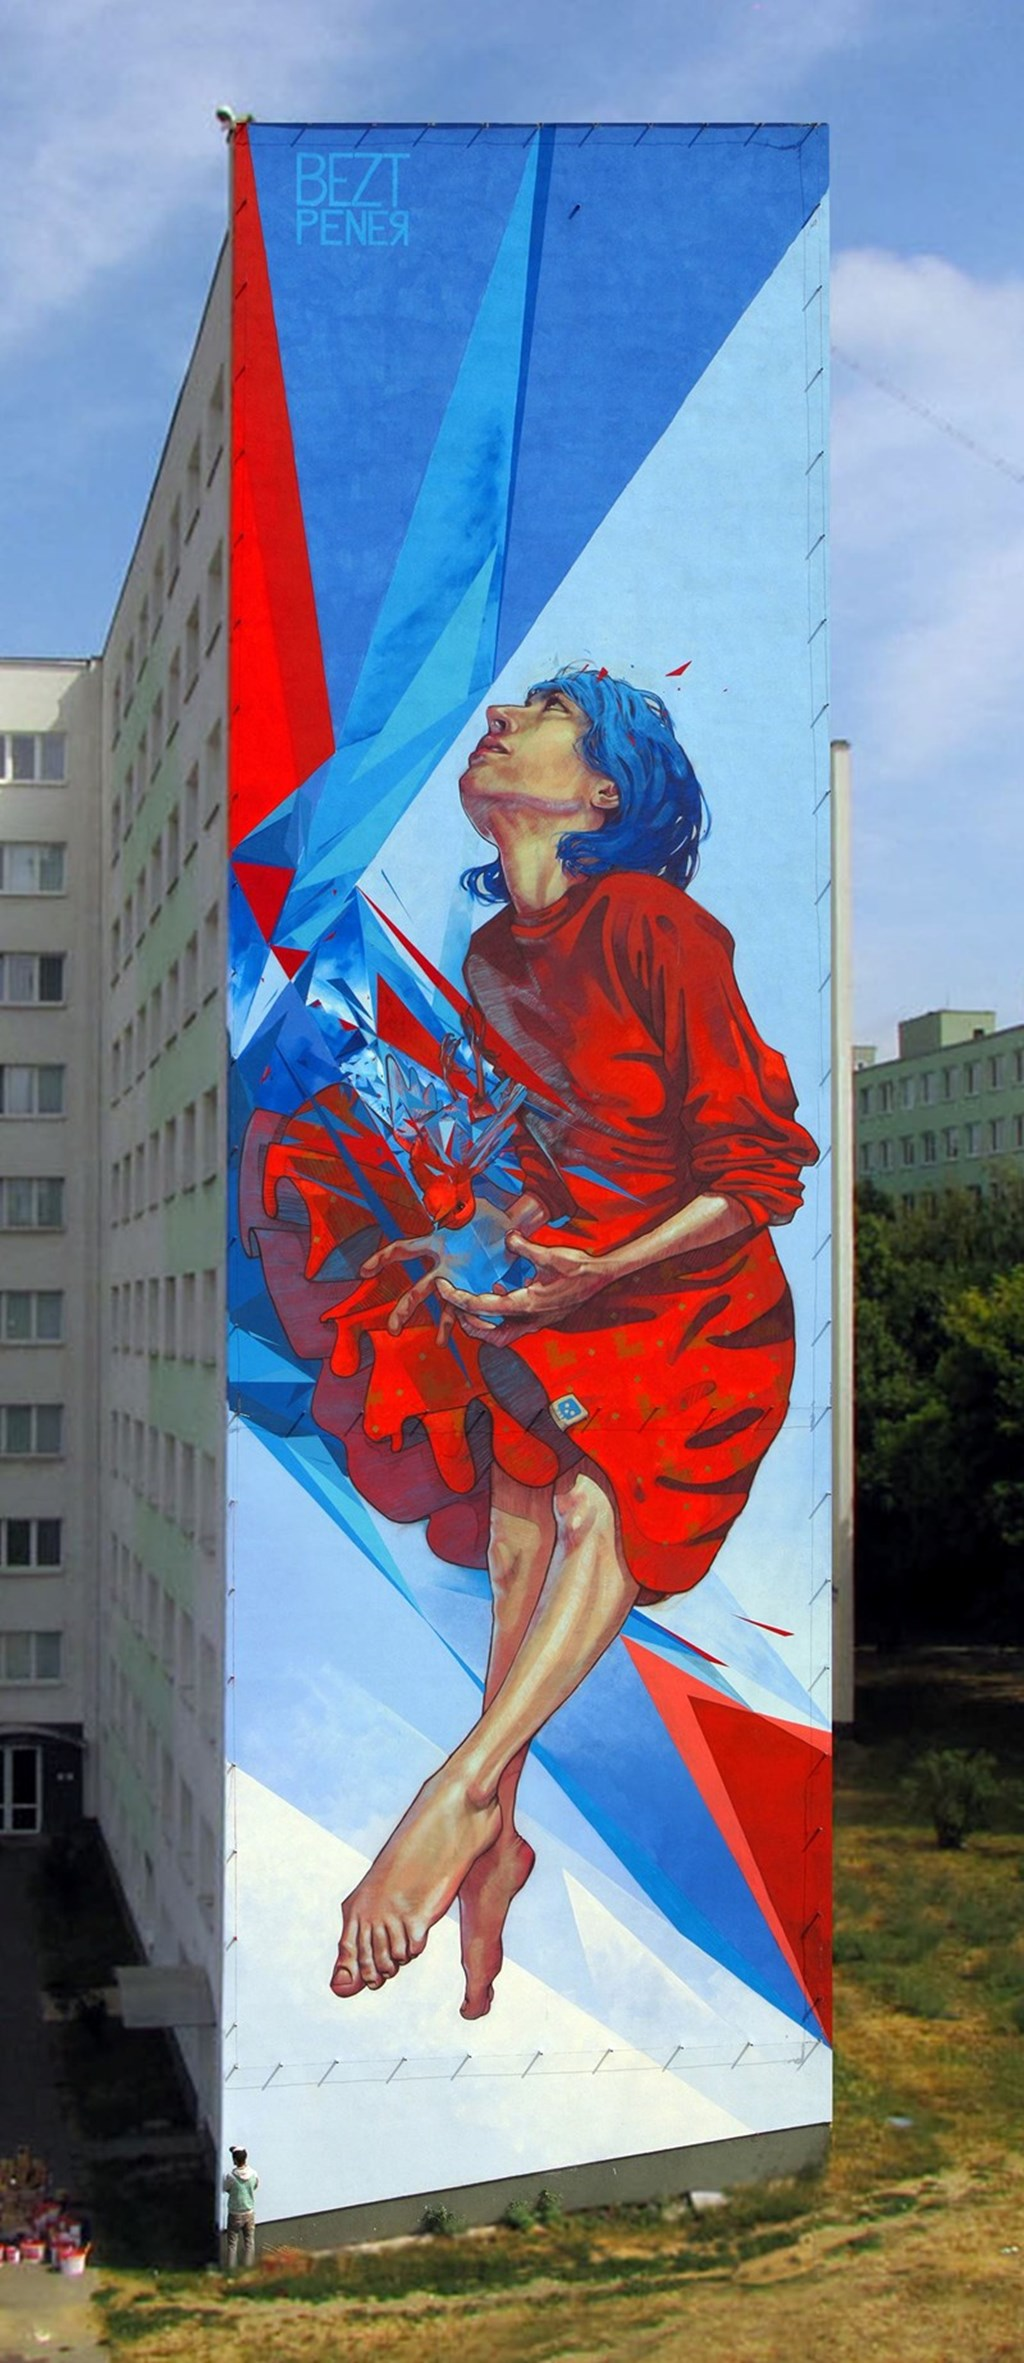 Etam Cru Makes Waves With Another Brilliant Mural 4